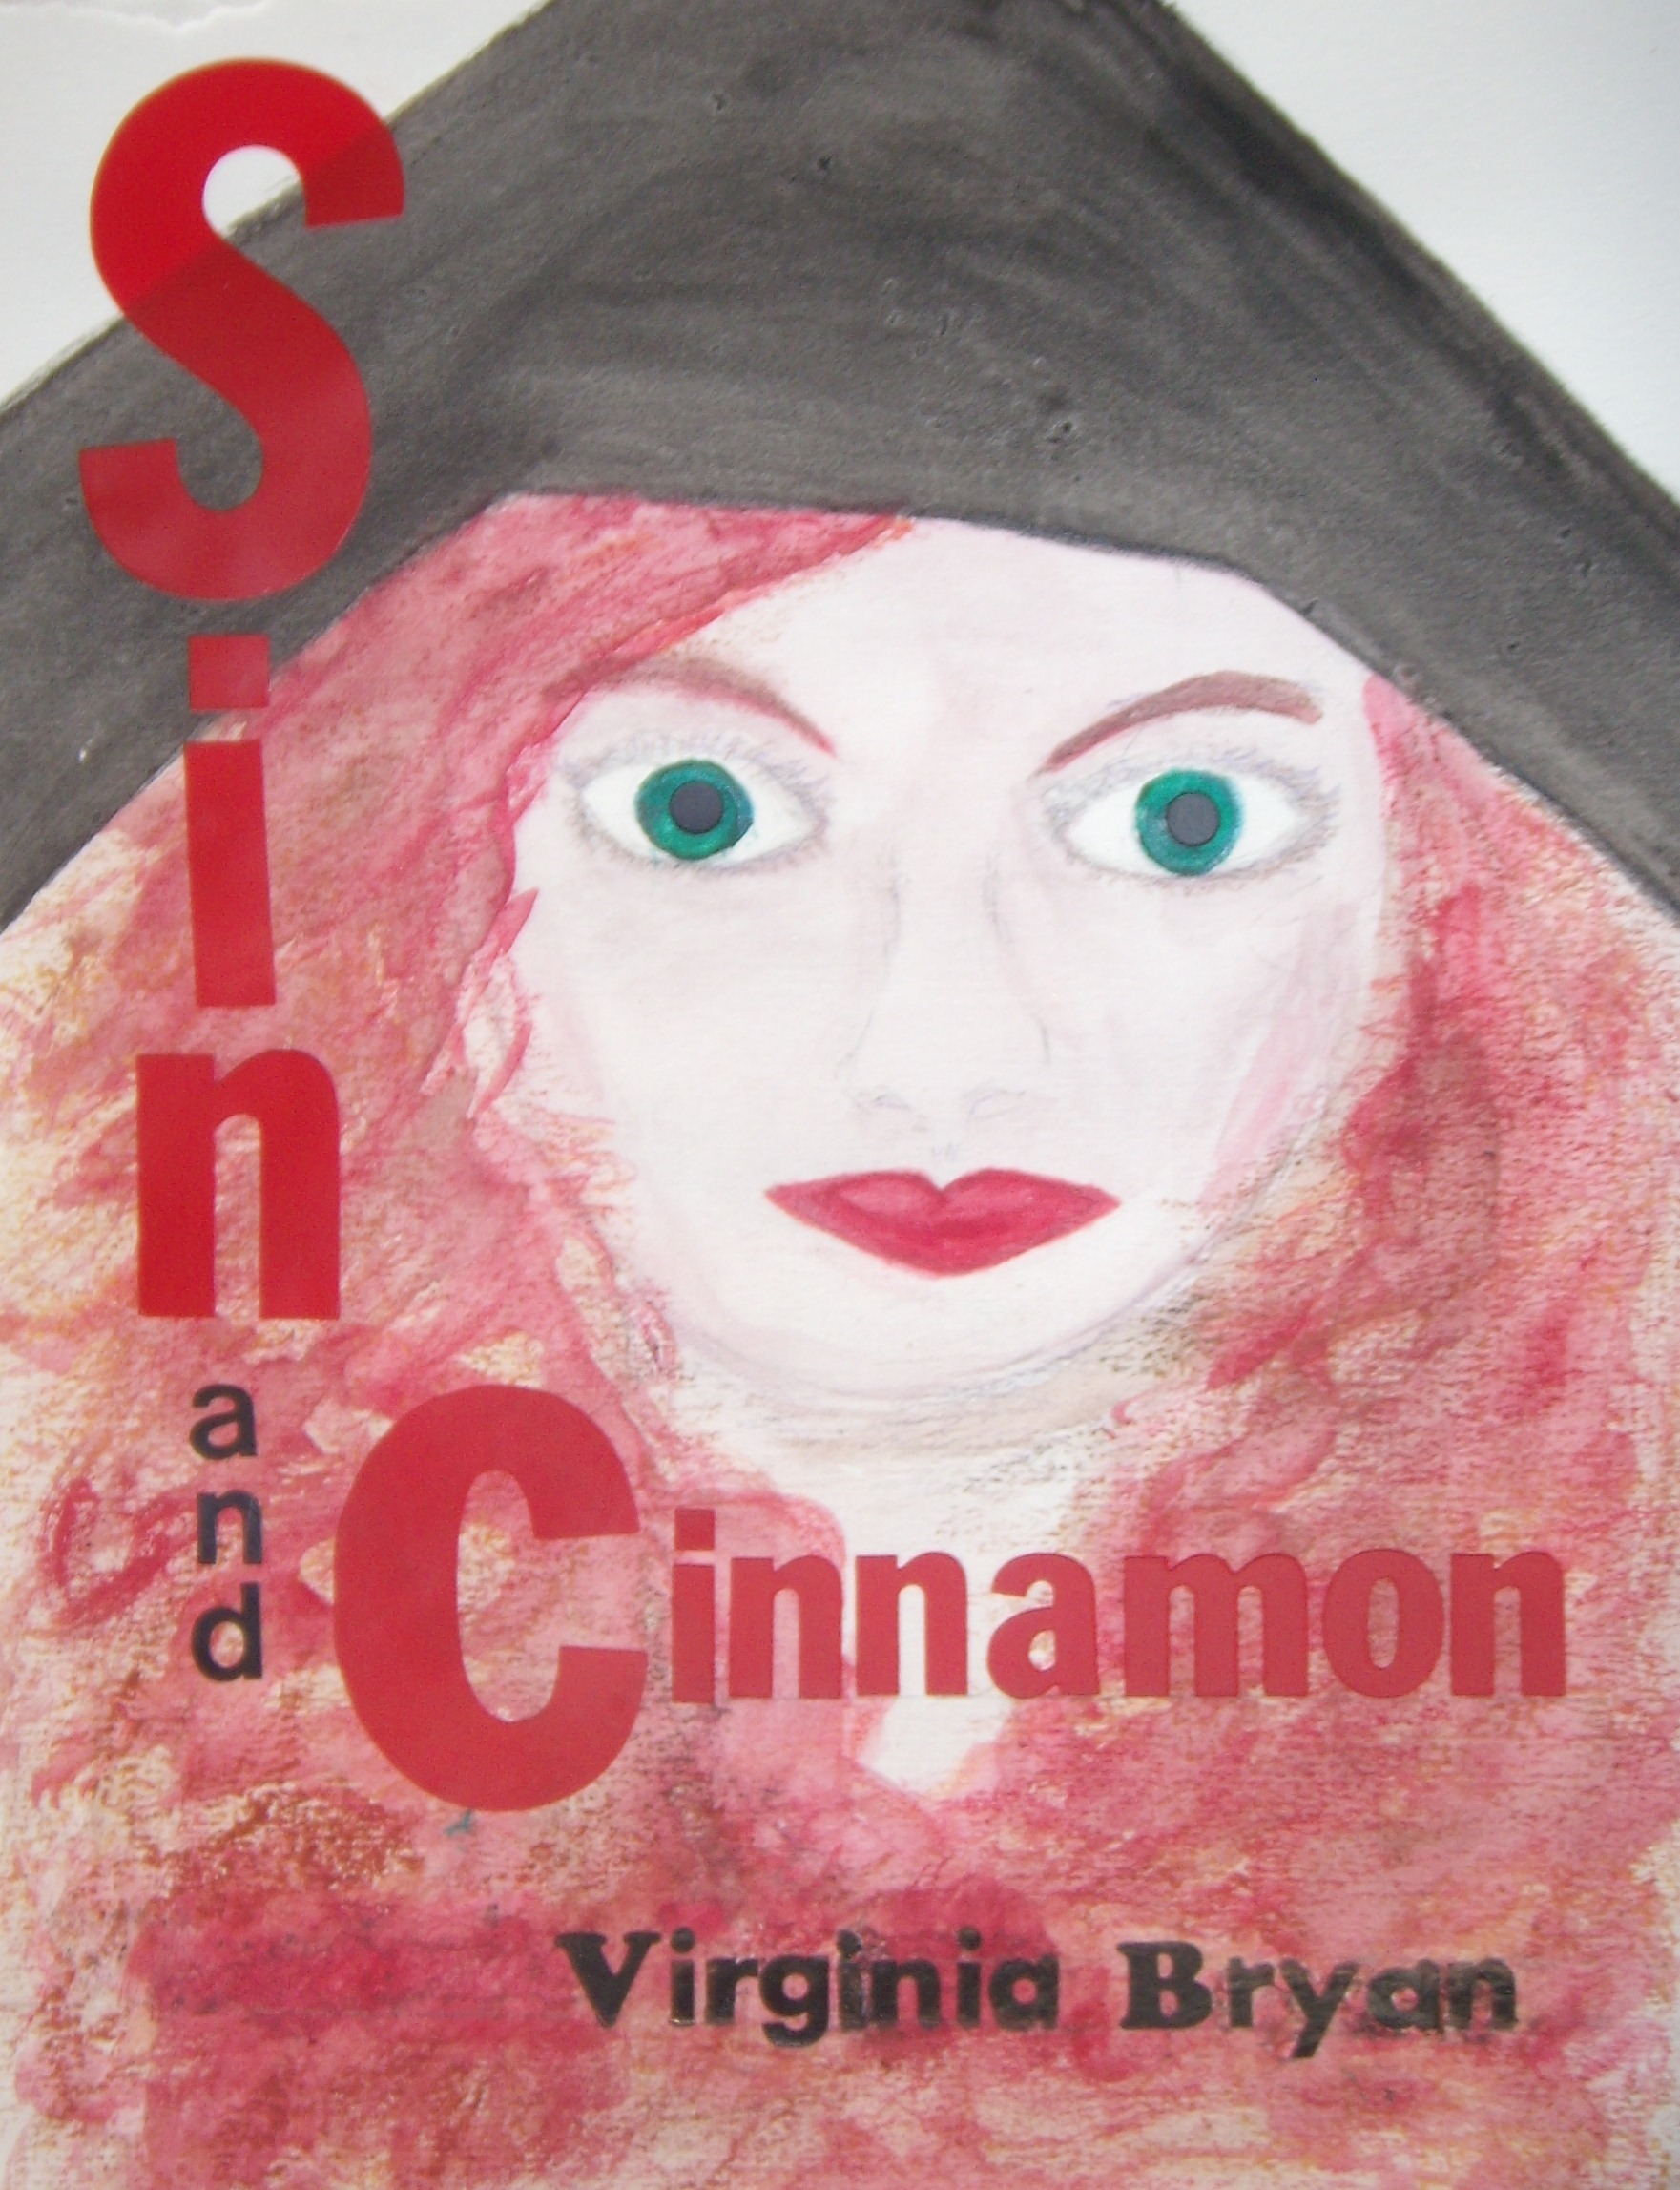 Sin and Cinnamon